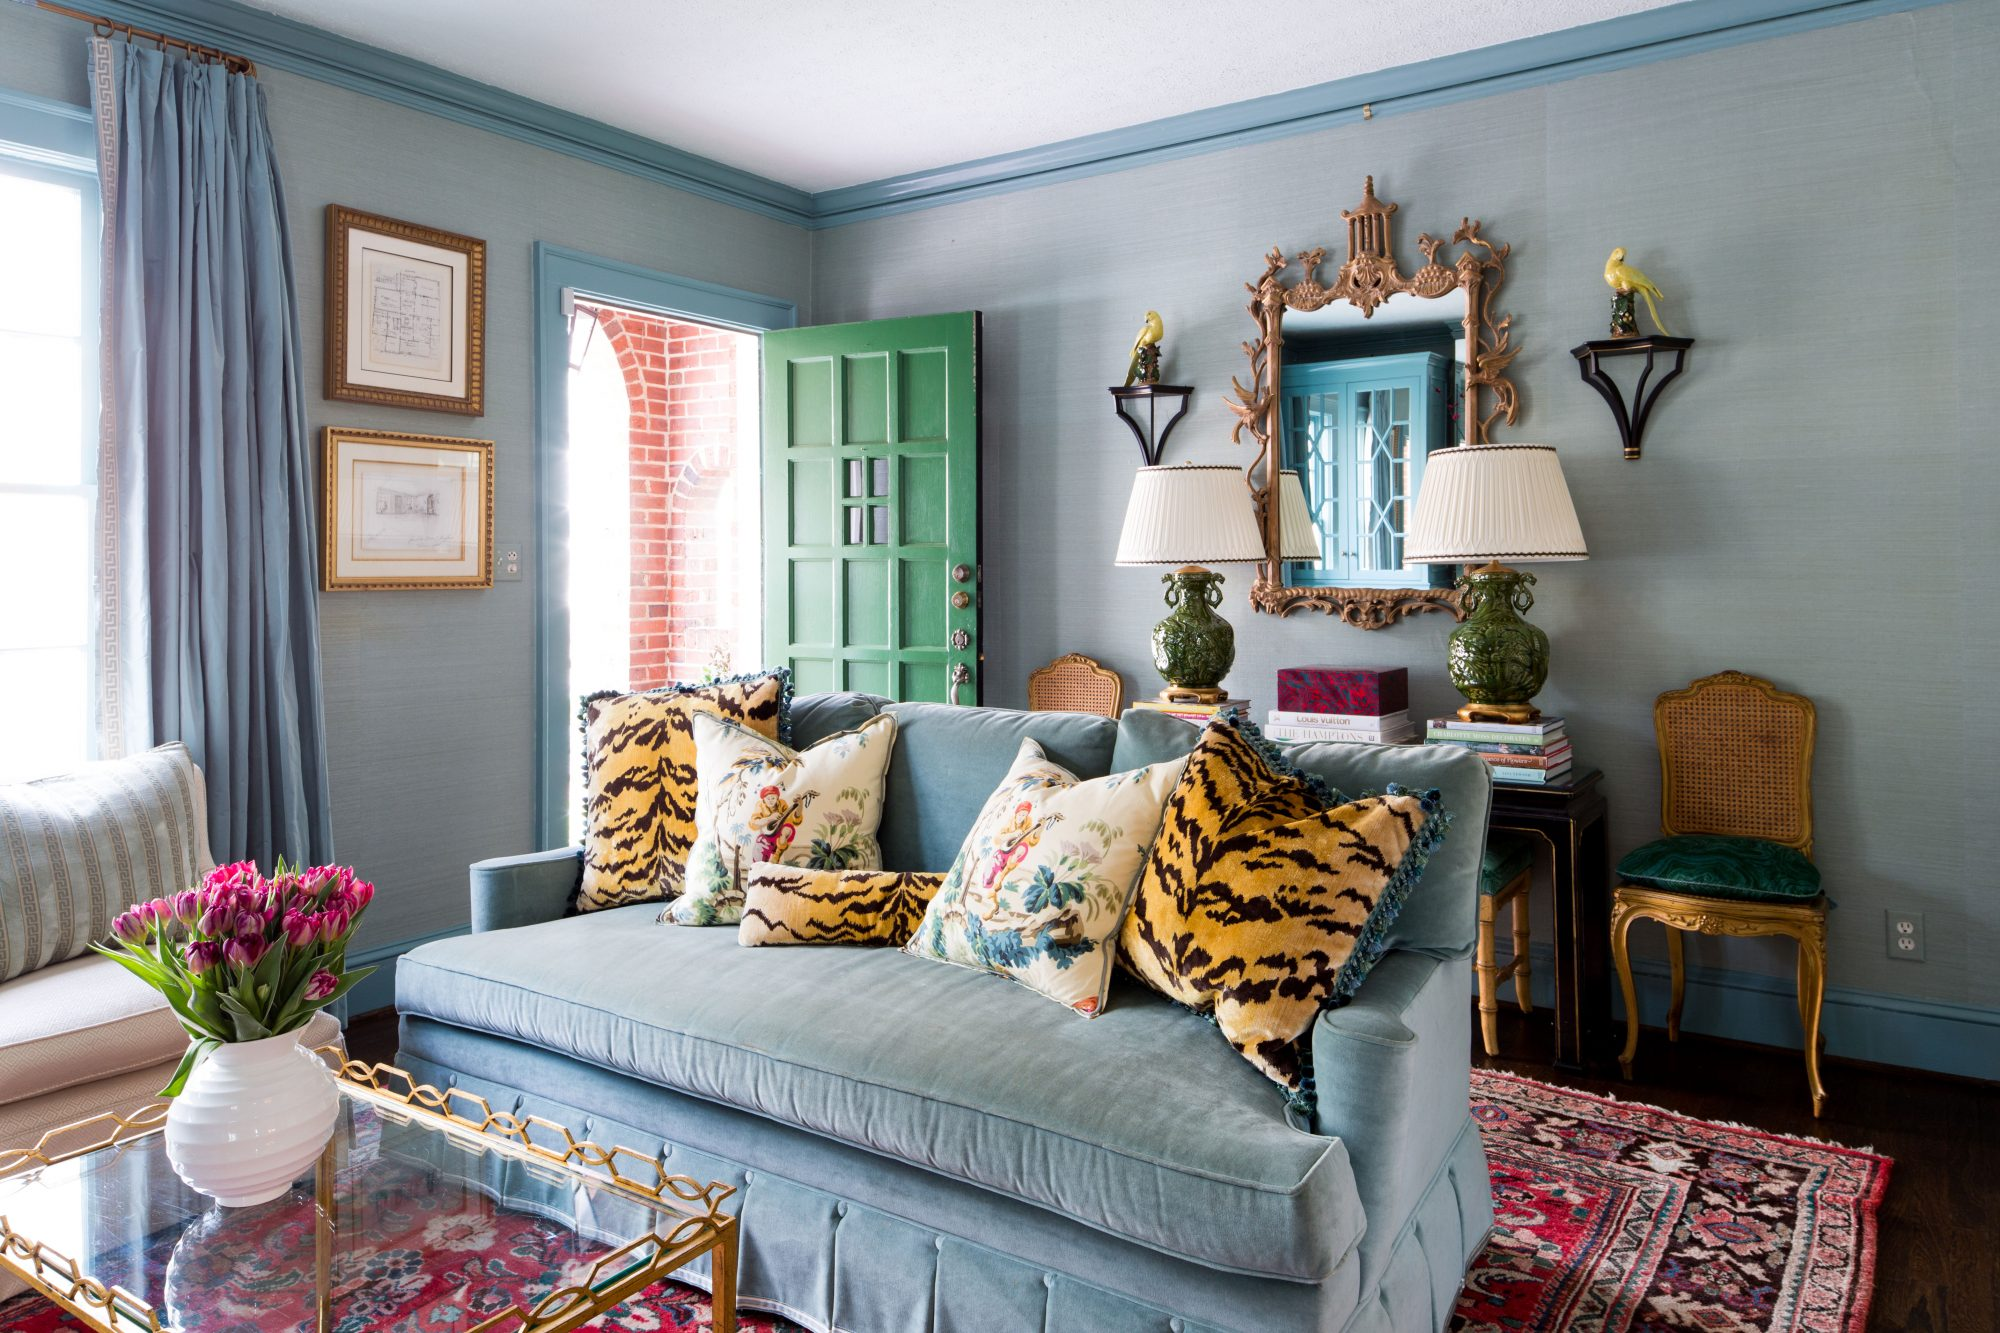 Bright Blue and Green Living Room